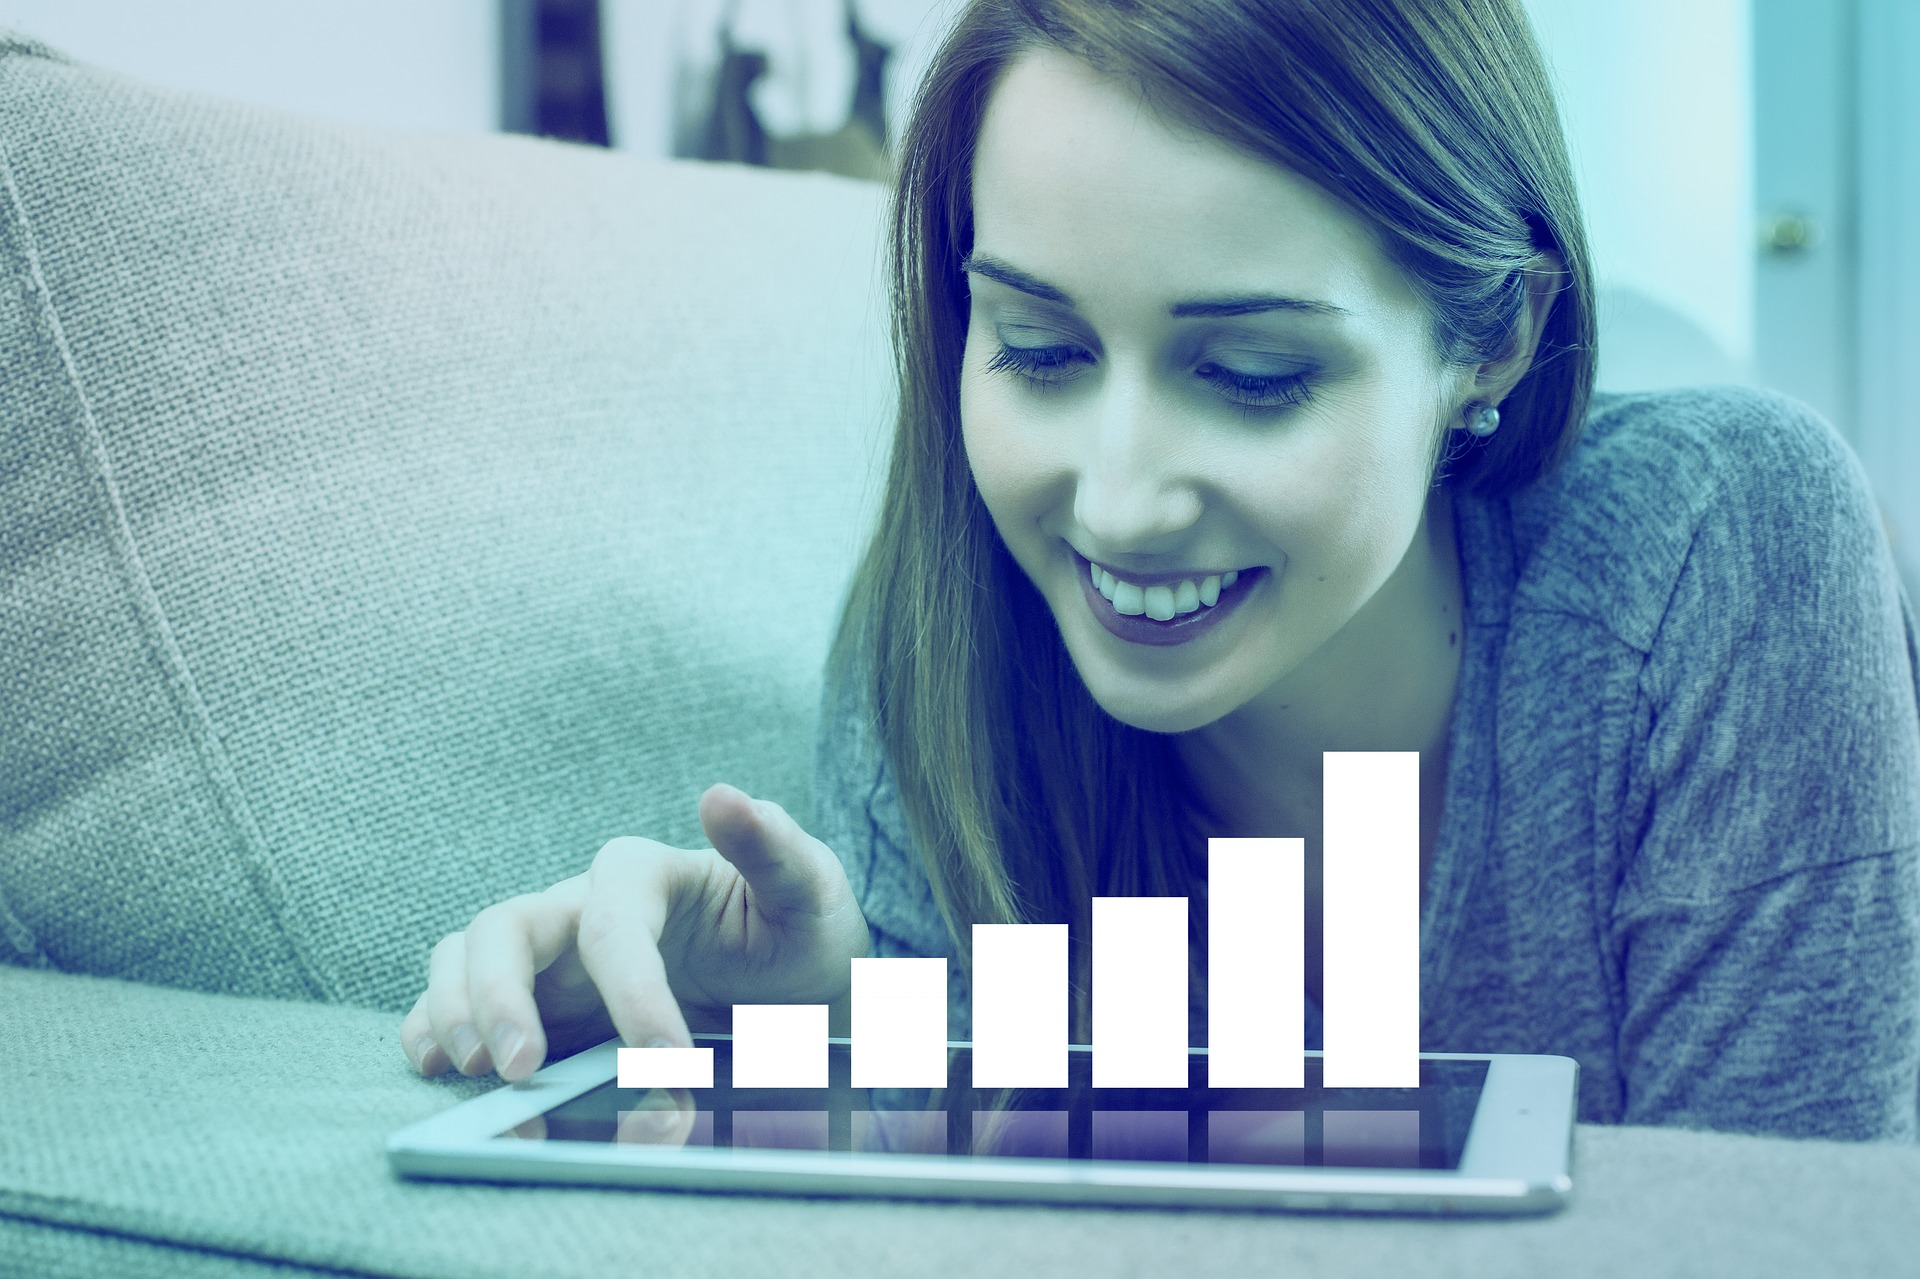 Woman looking at charts on tablet